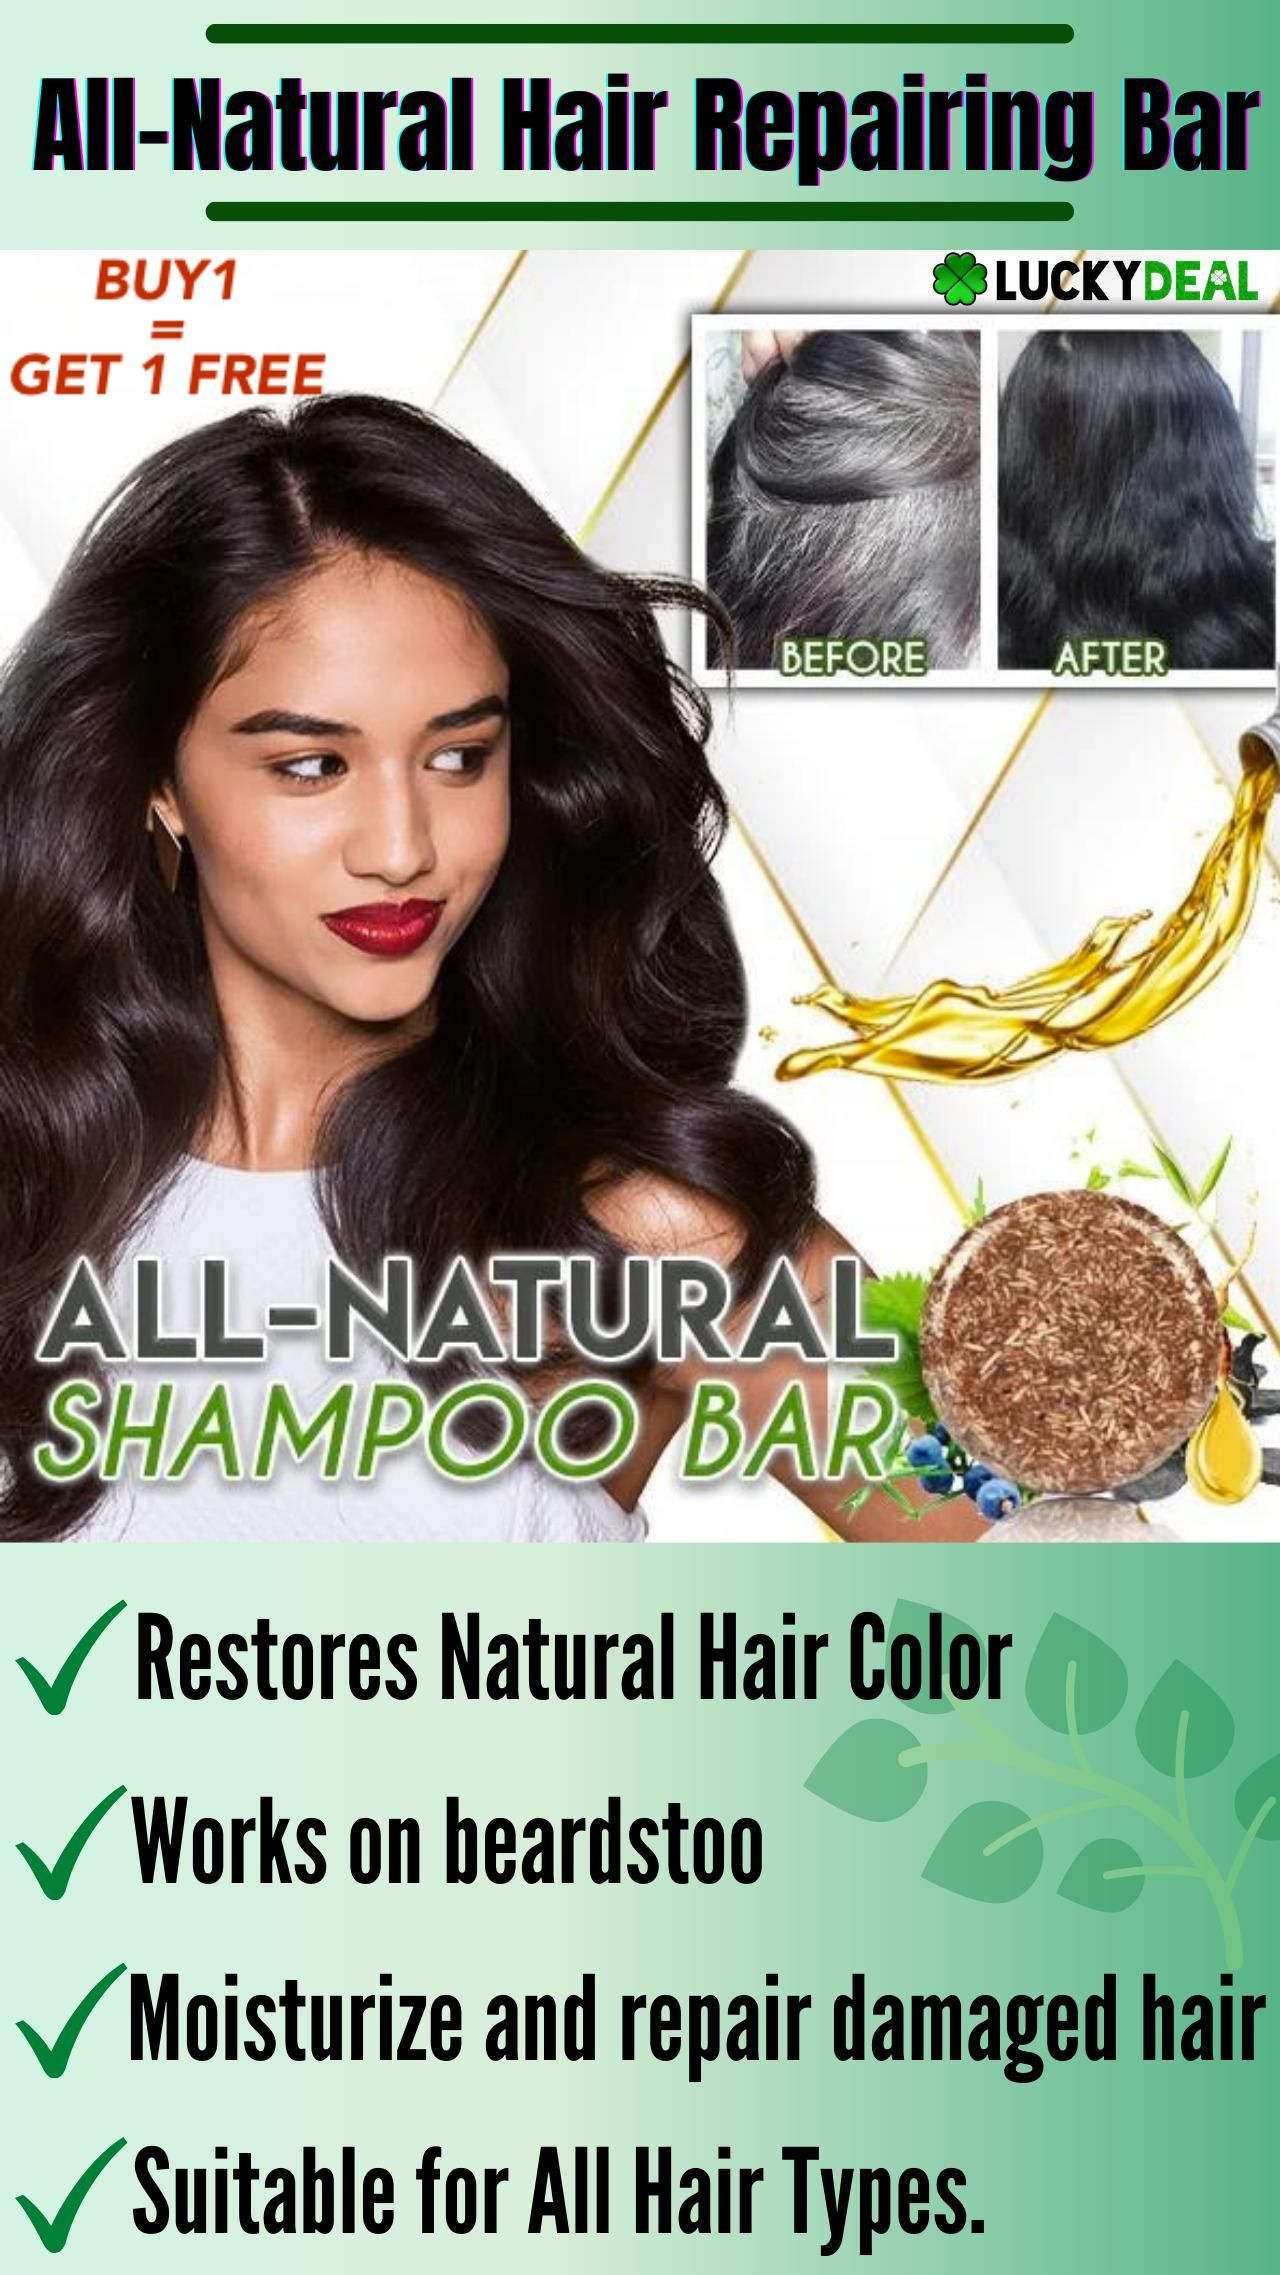 🔥All Natural Hair Repairing Bar🌿